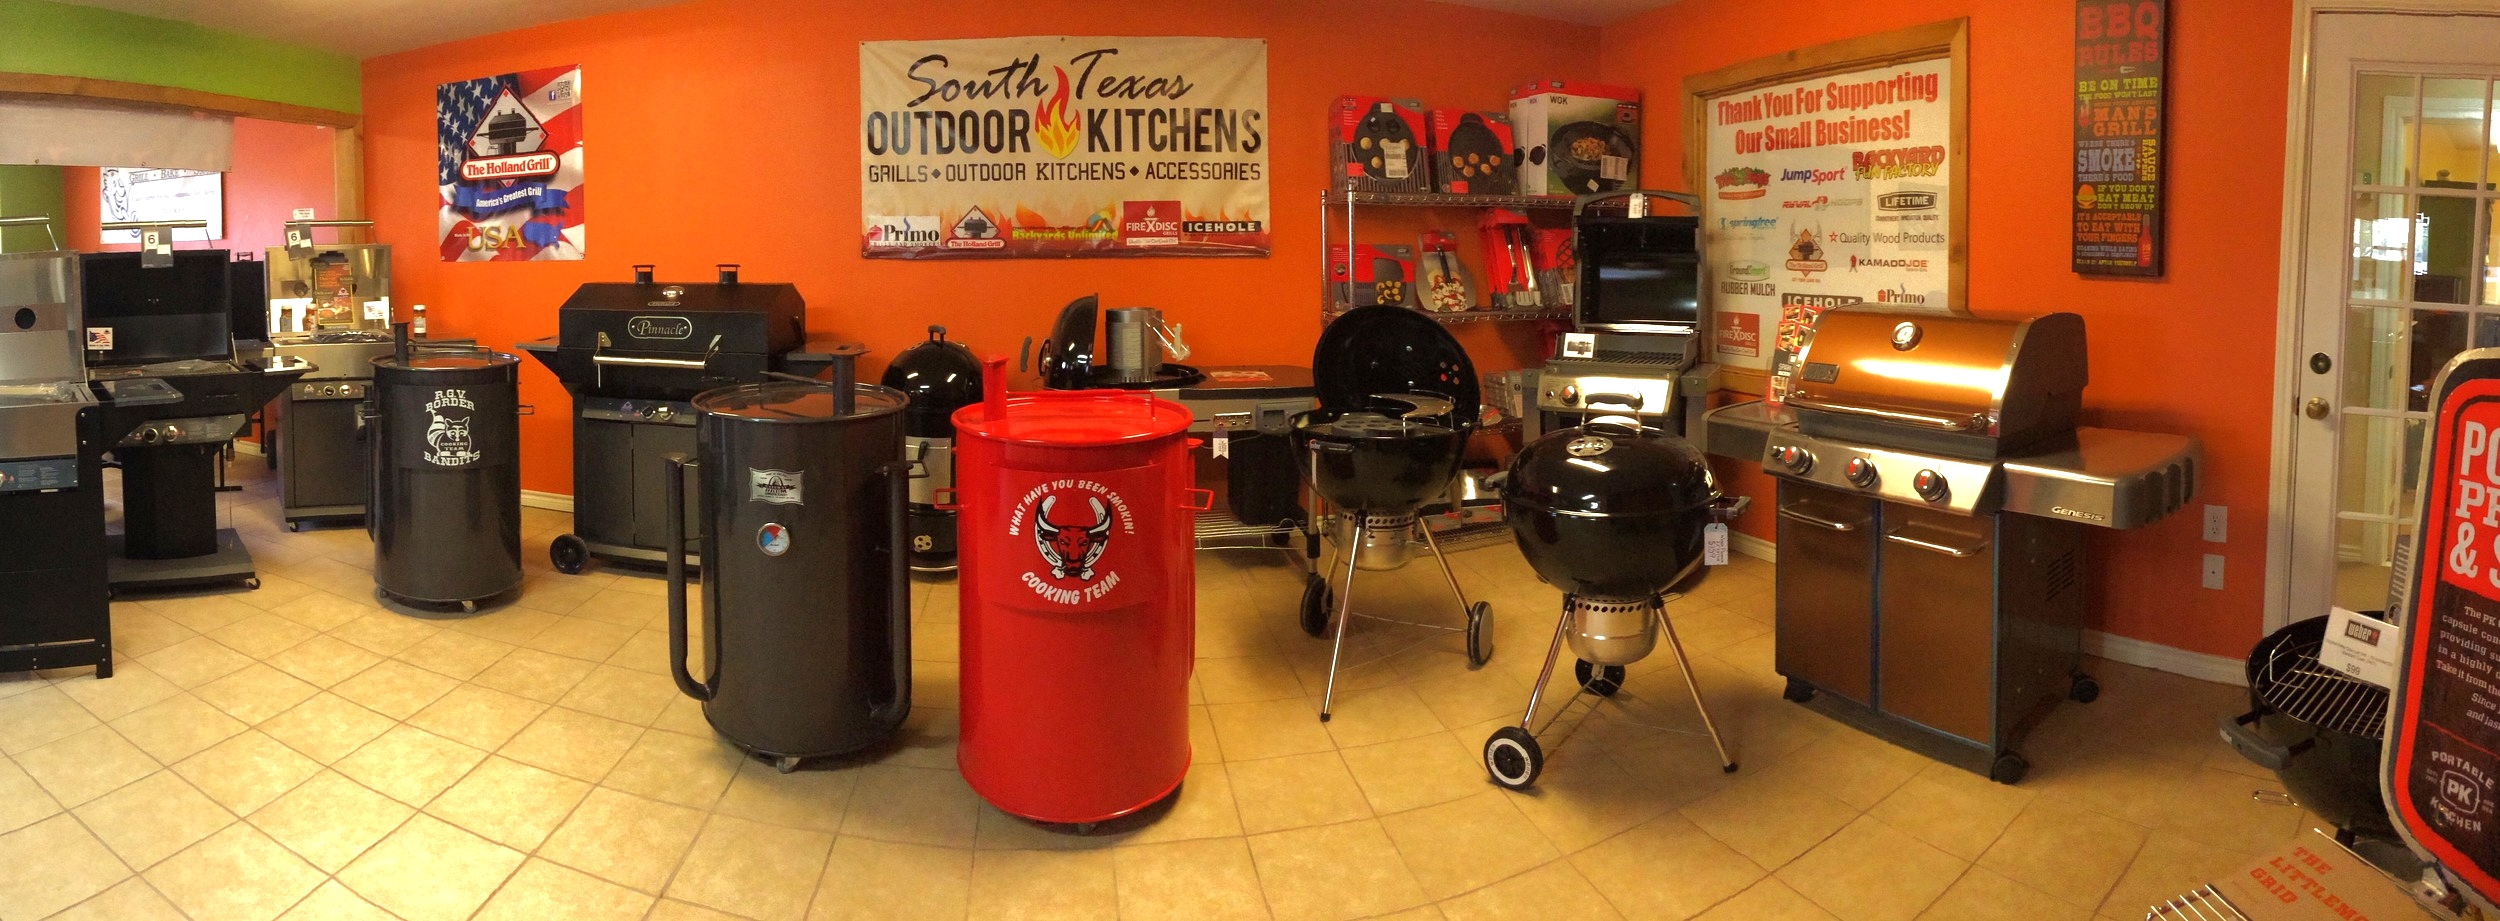 Grills South Texas Outdoor Kitchens